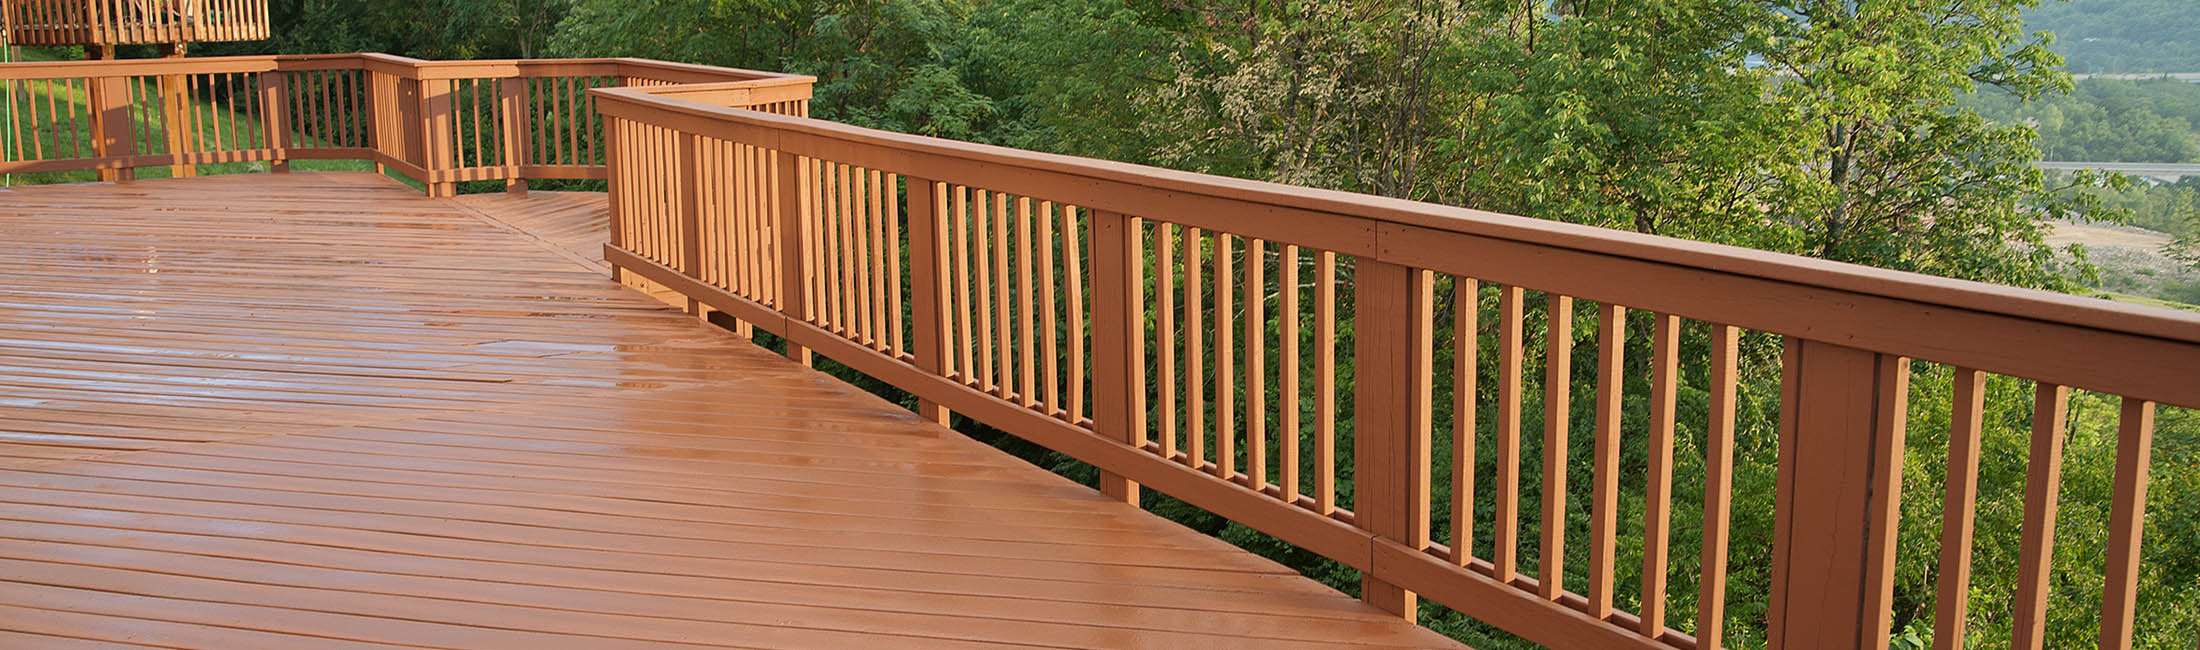 Composite Wood Decking South Africa Fishers Best Deck